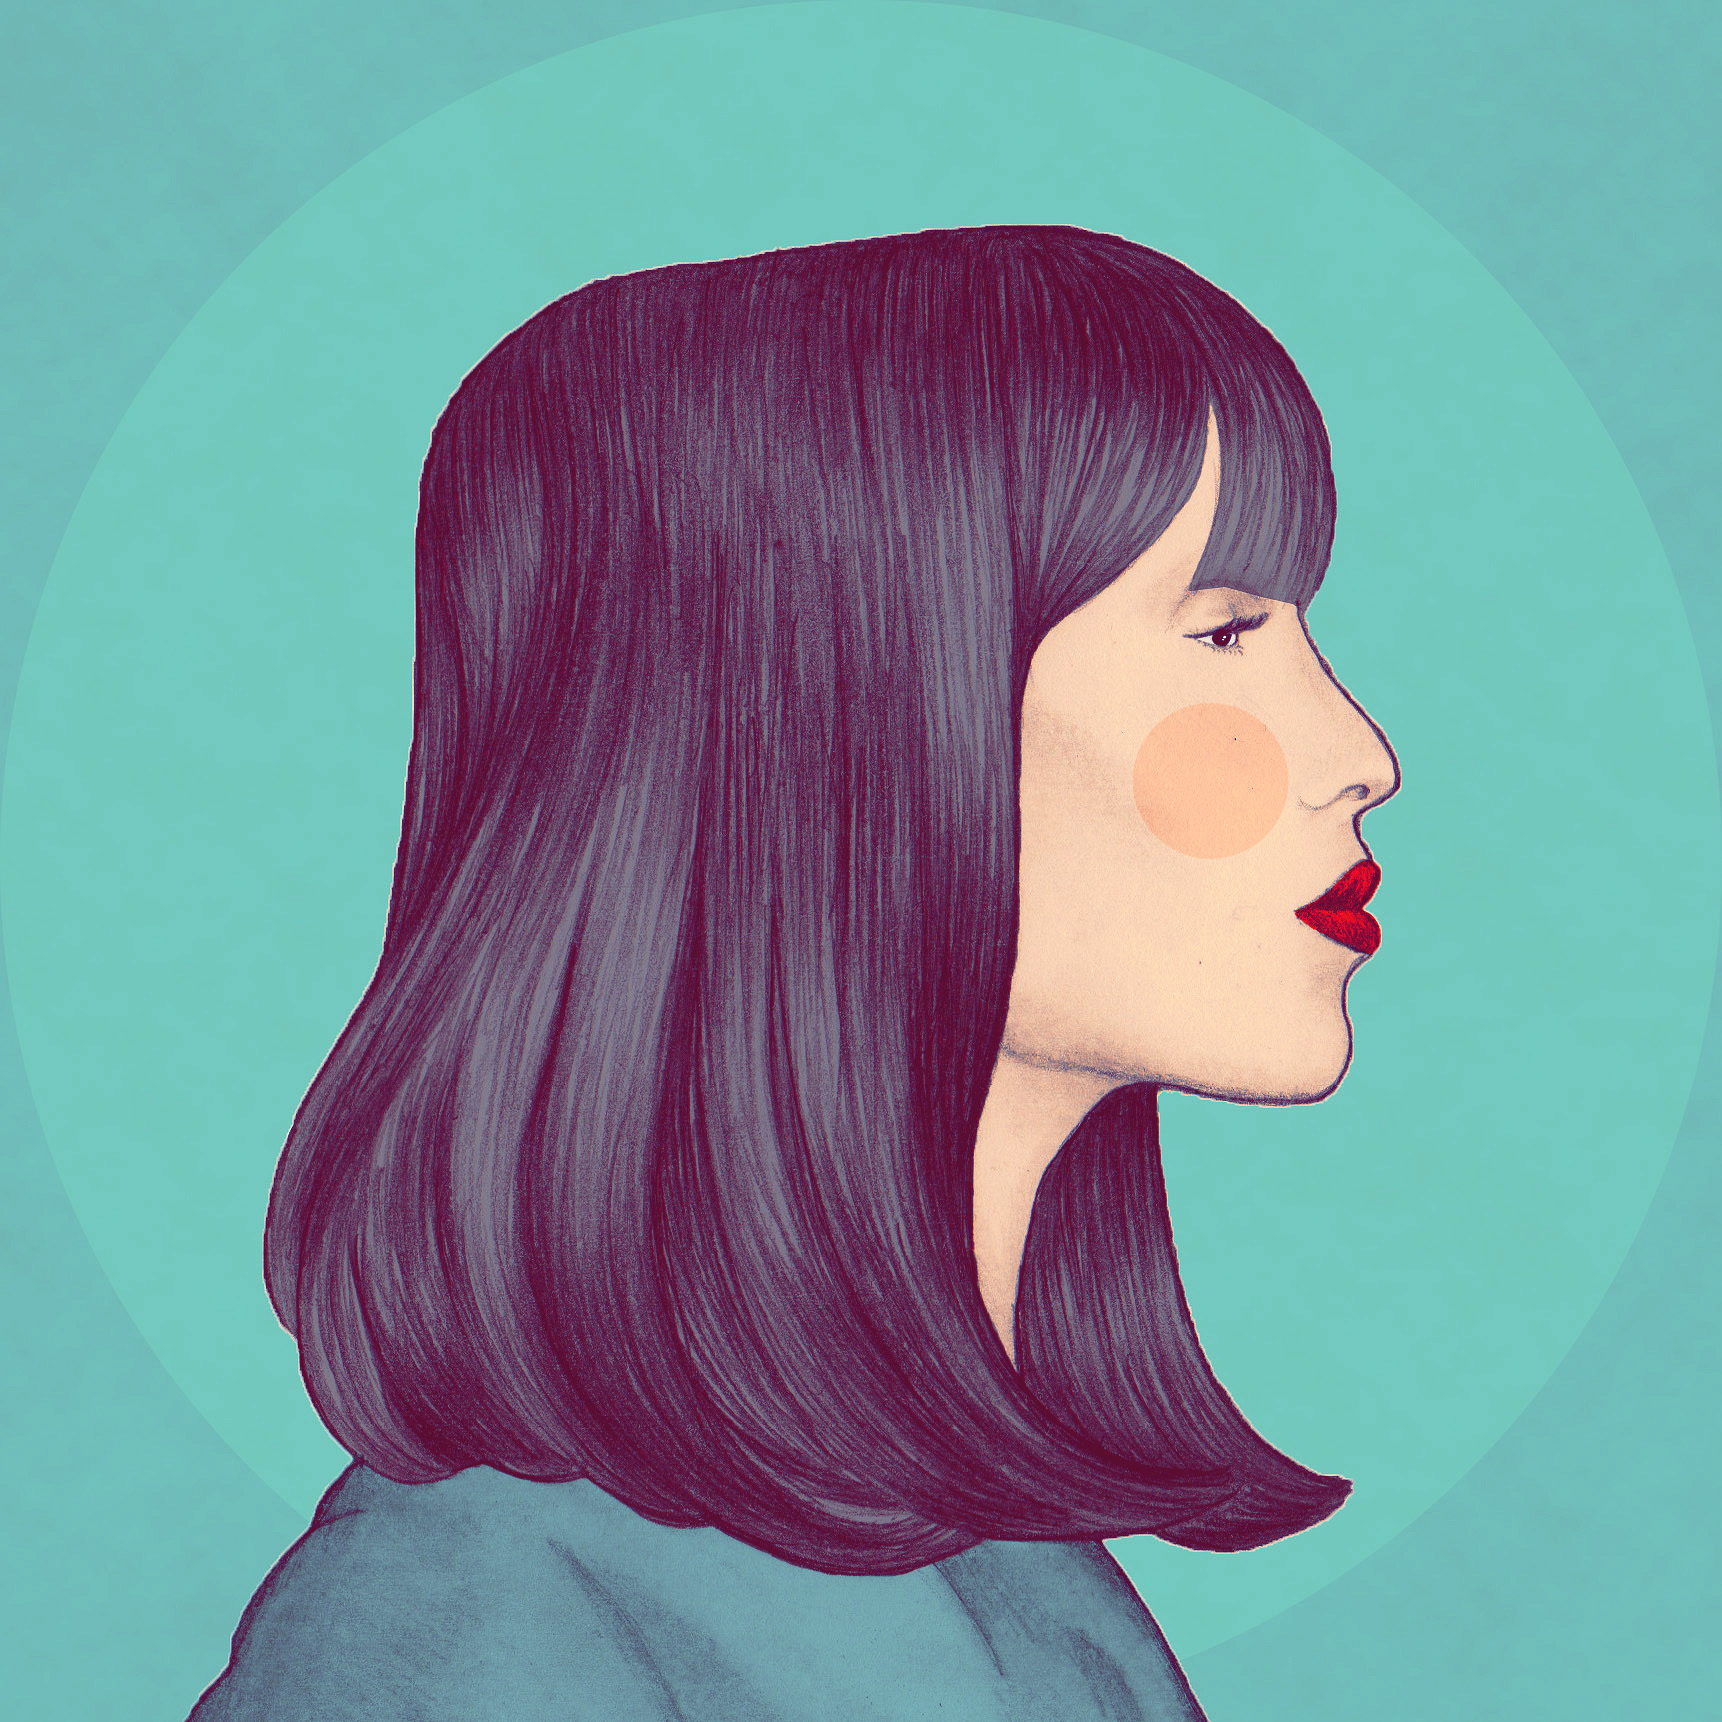 Sofia Azevedo Illustration